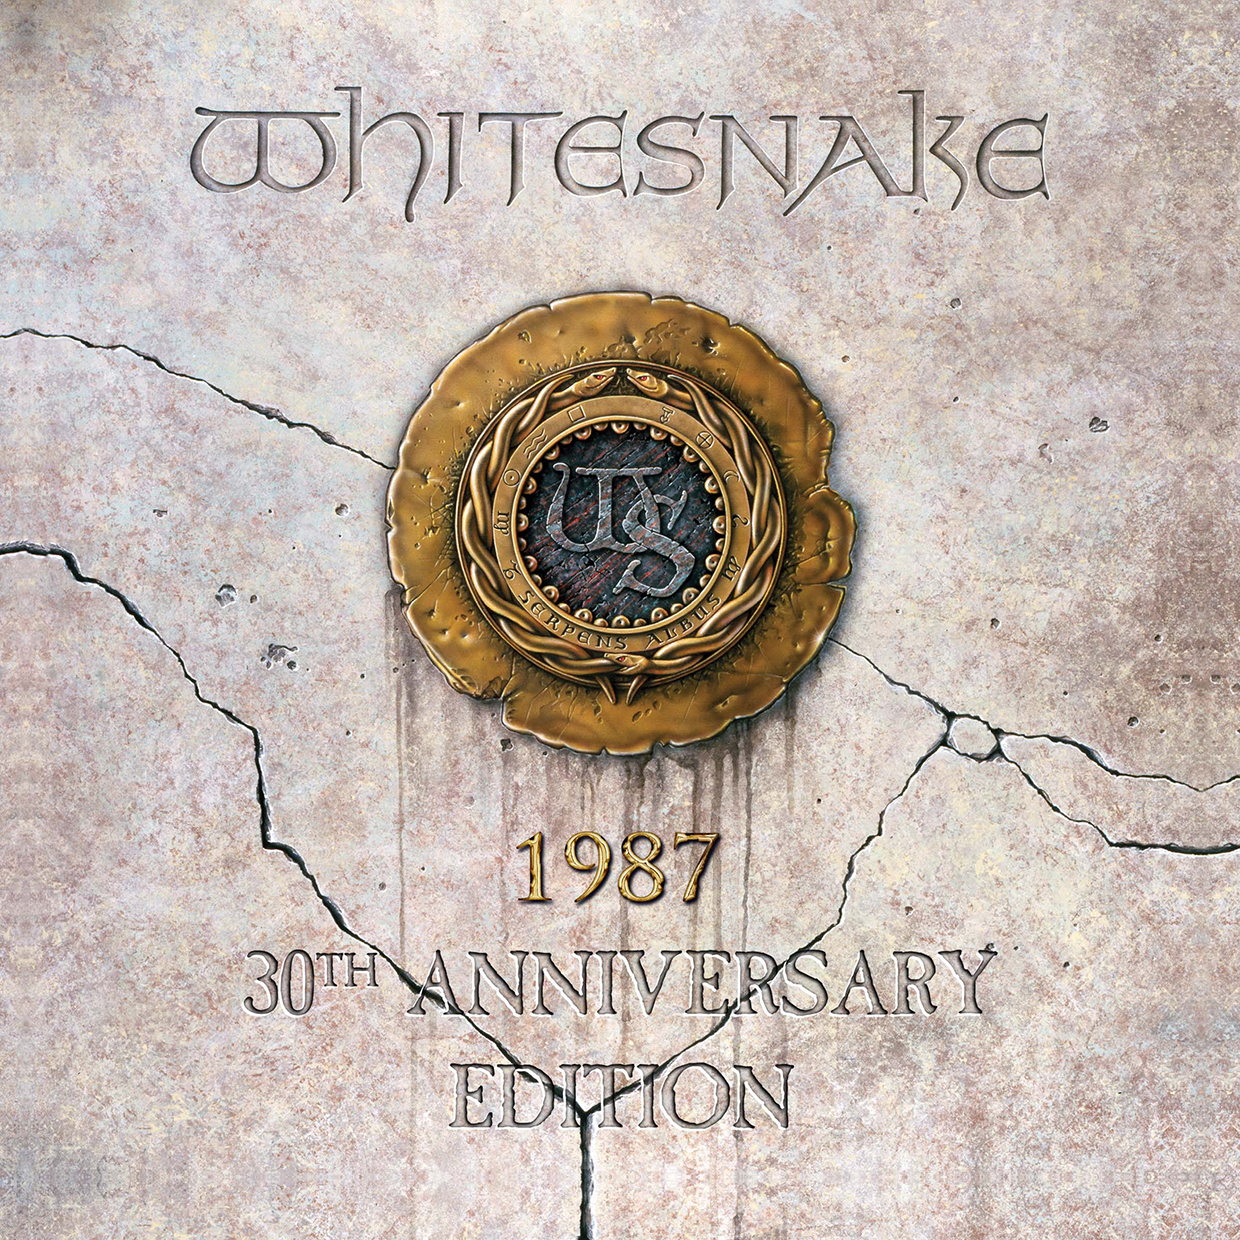 Whitesnake's David Coverdale, 'next 3 to 5 years is spoken for with some really exciting projects'